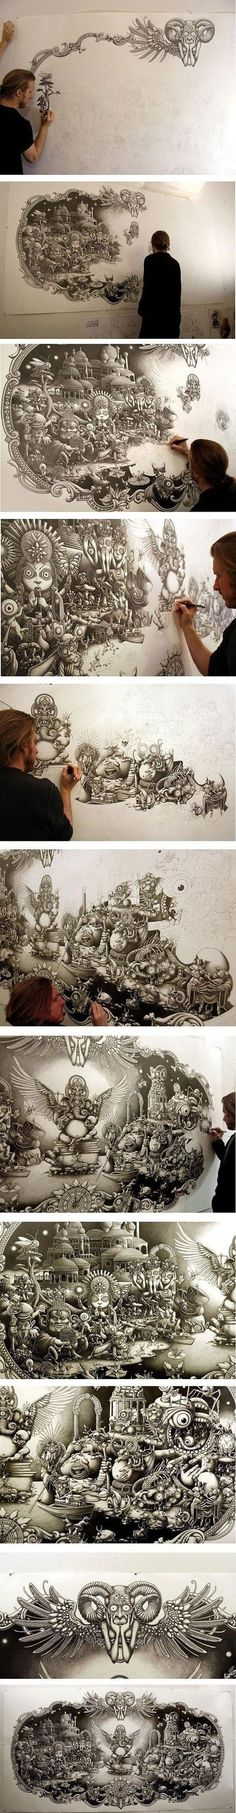 Amazing pencil art... Wow how do you even start something like this?